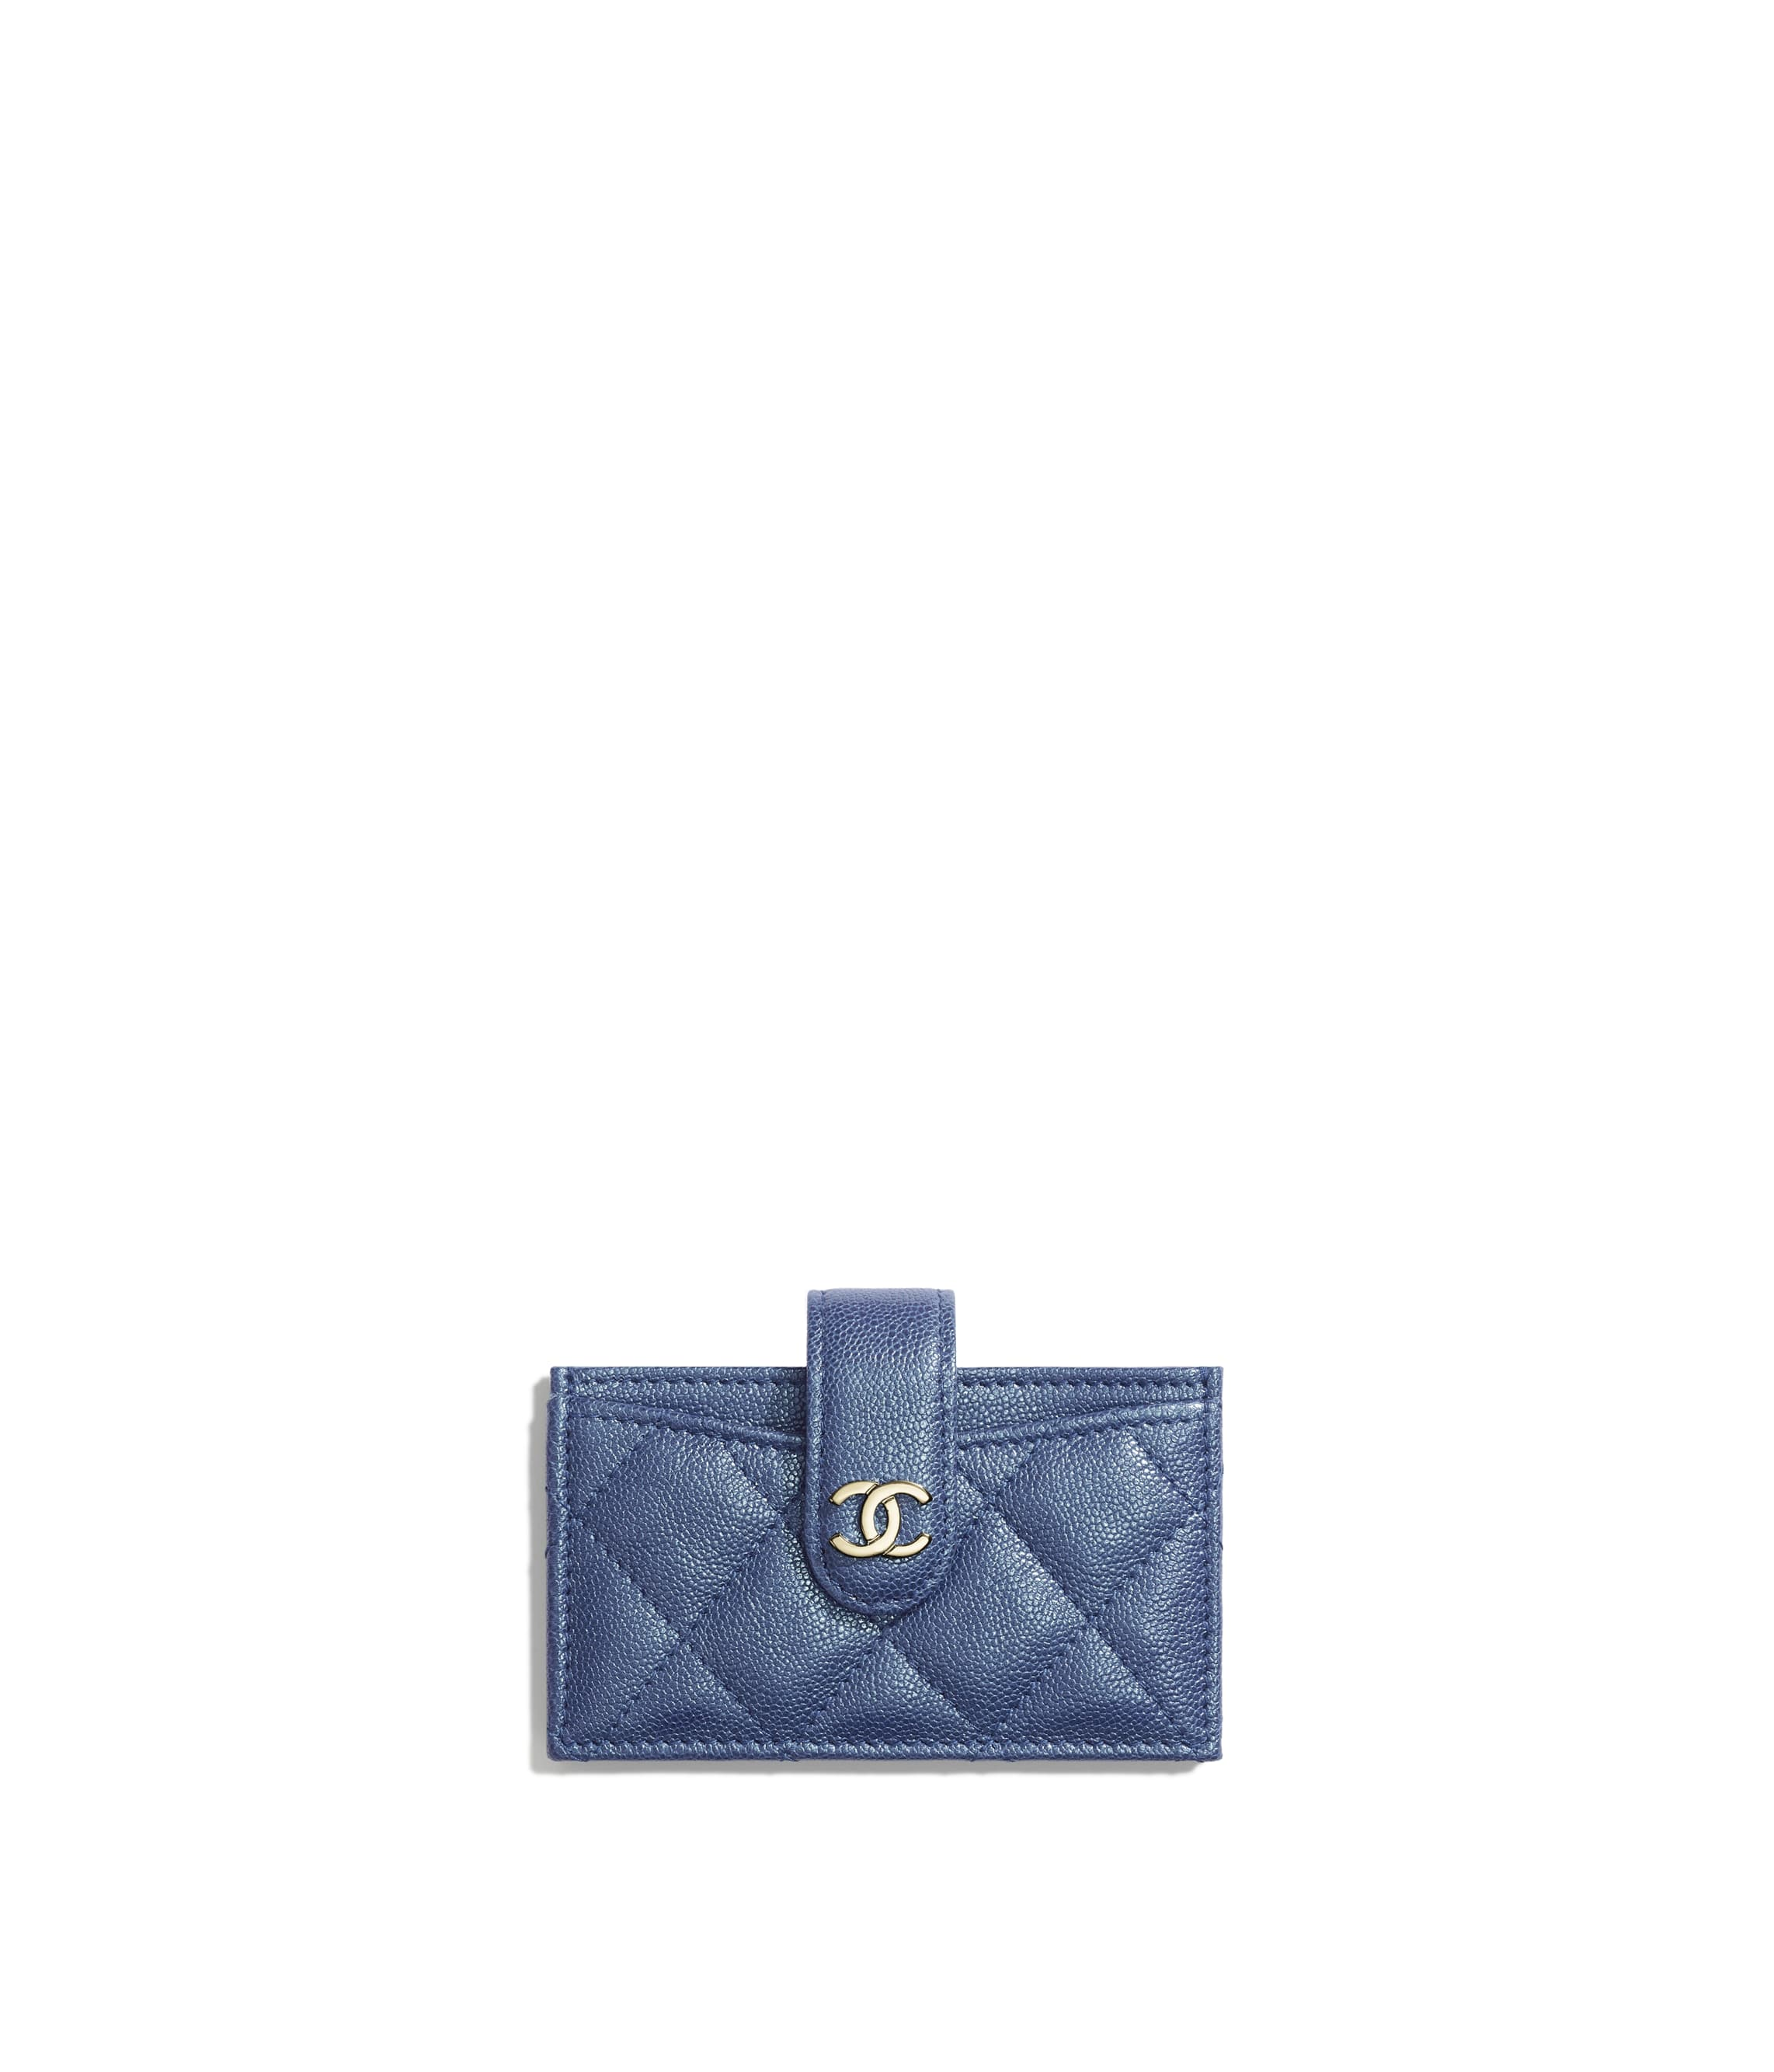 42fc831bf785 Card Holders - Small Leather Goods - CHANEL